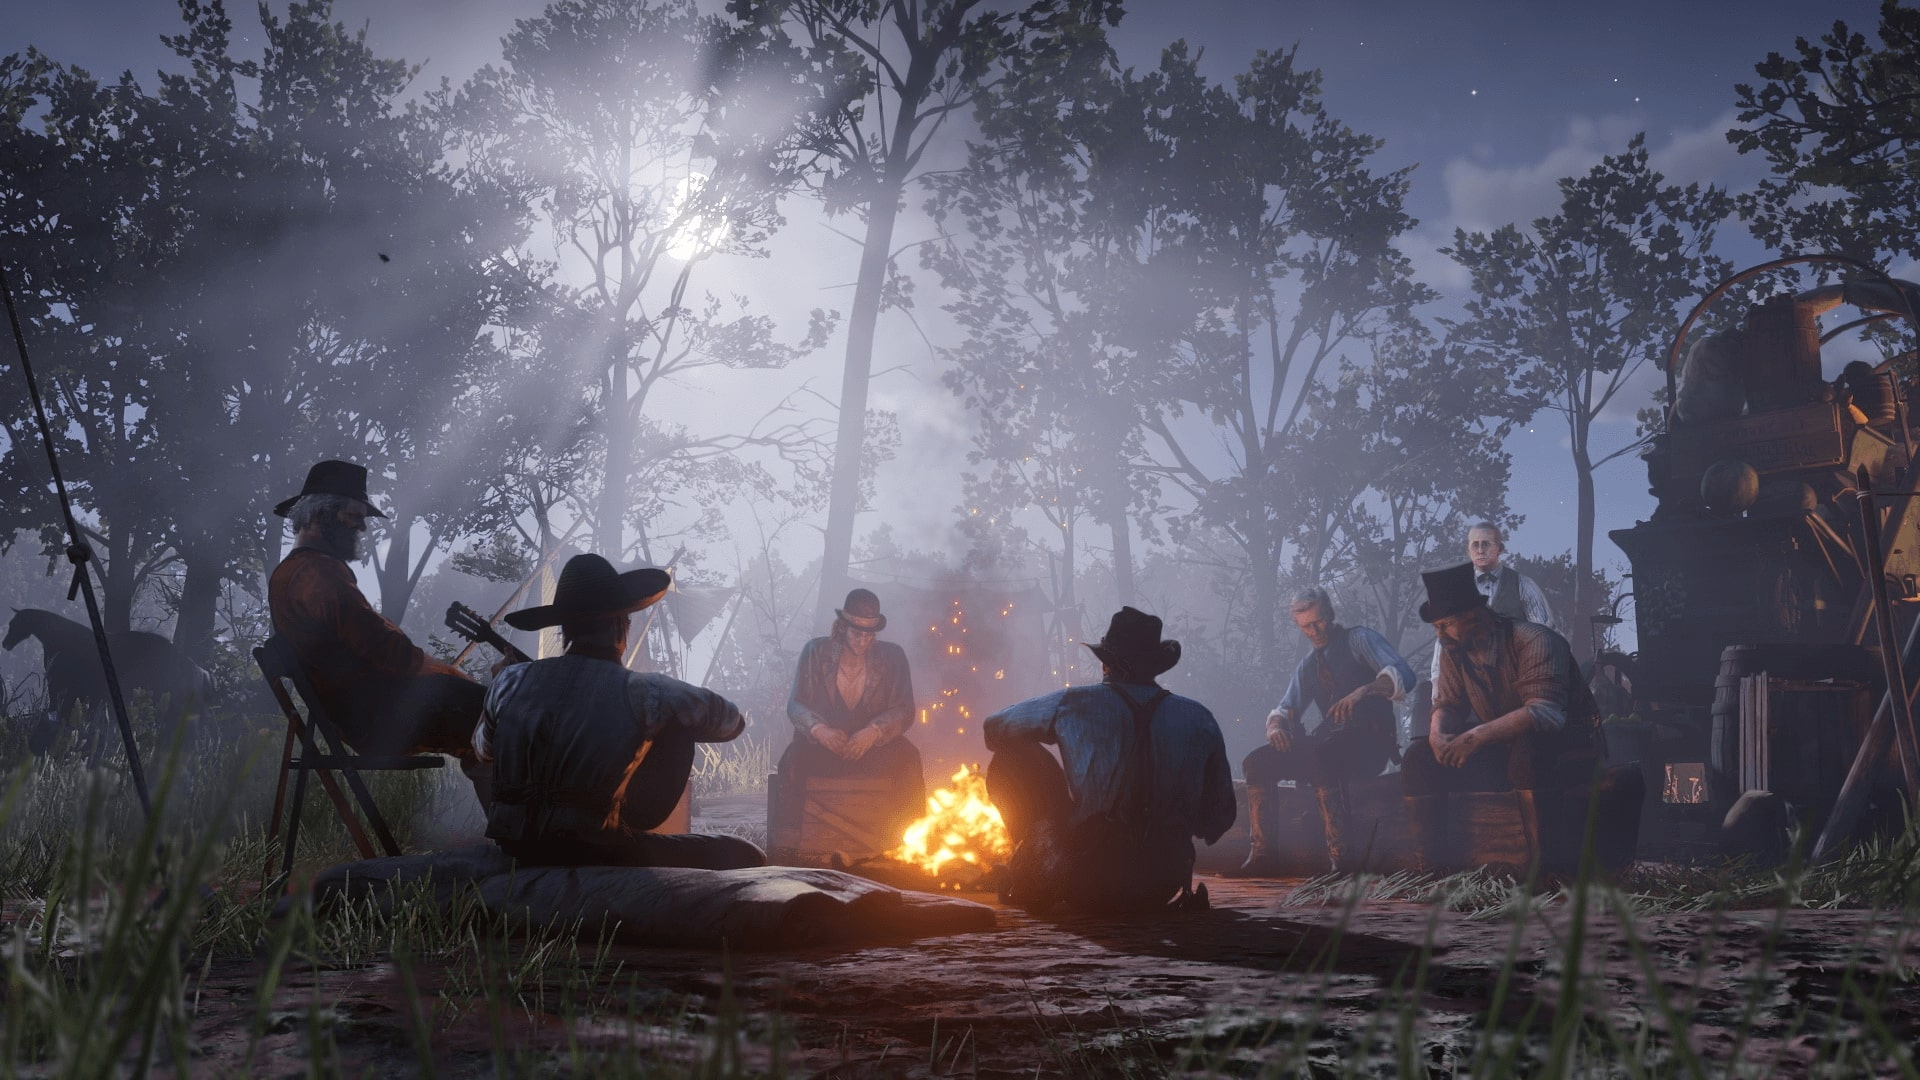 In Red Dead Redemption 2, each trip turns into an interesting adventure with its own story.